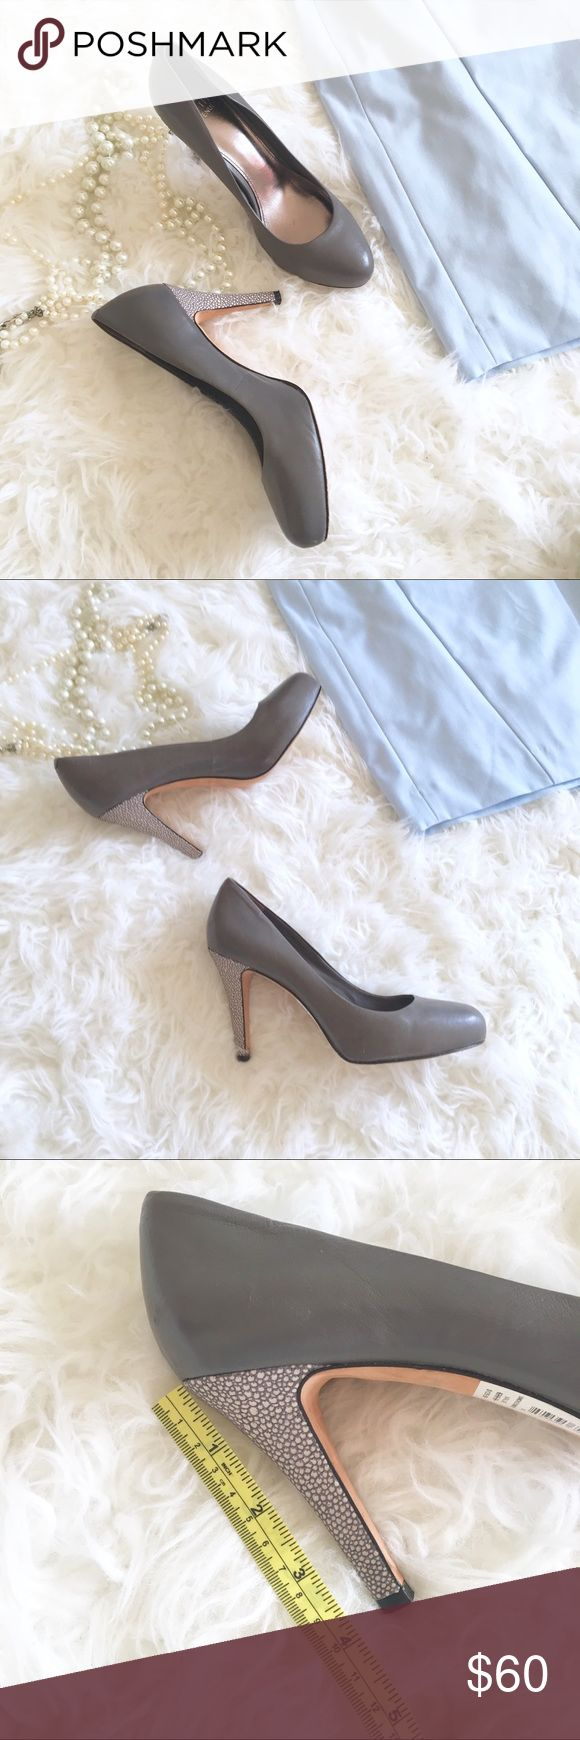 Saks off 5th Ave, Grey Pumps These Saks Fifth Ave heels (style is Selena, color: Smoke)are so chic and classy. The textured heels is a nice unexpected detail. It is perfect for the office or paired with a LBD for a holiday party. Saks Fifth Avenue Shoes Heels